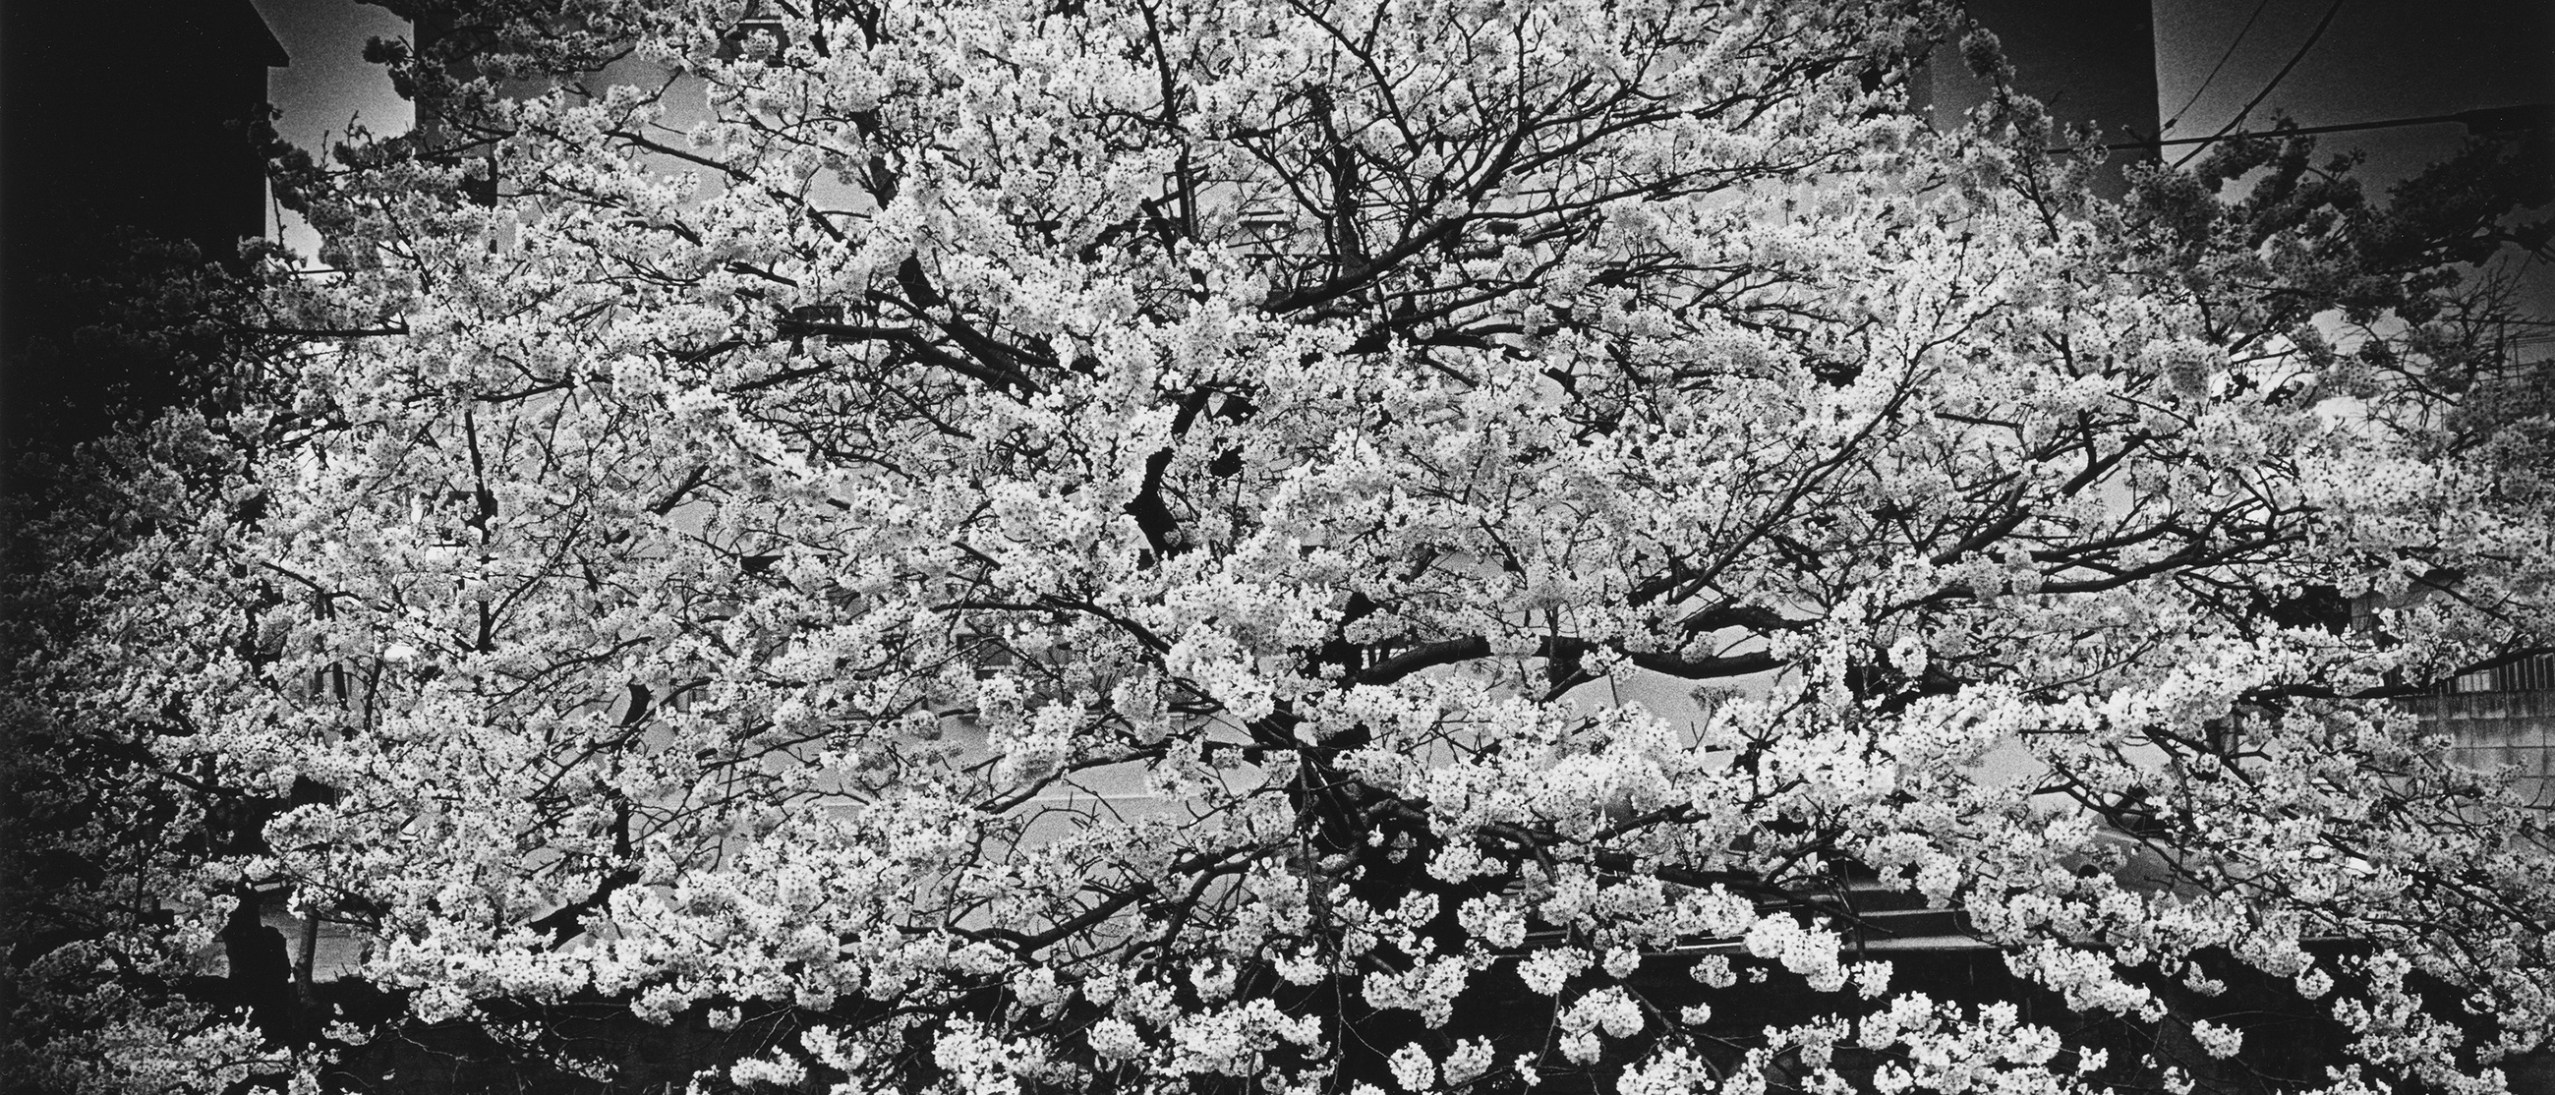 Detail photograph, Cherry Blossoms; Moriyama Daido (b. 1938, Ikeda City, Japan); Gelatin silver print, 1982; Purchase—Friends of the Freer and Sackler Galleries S2012.10